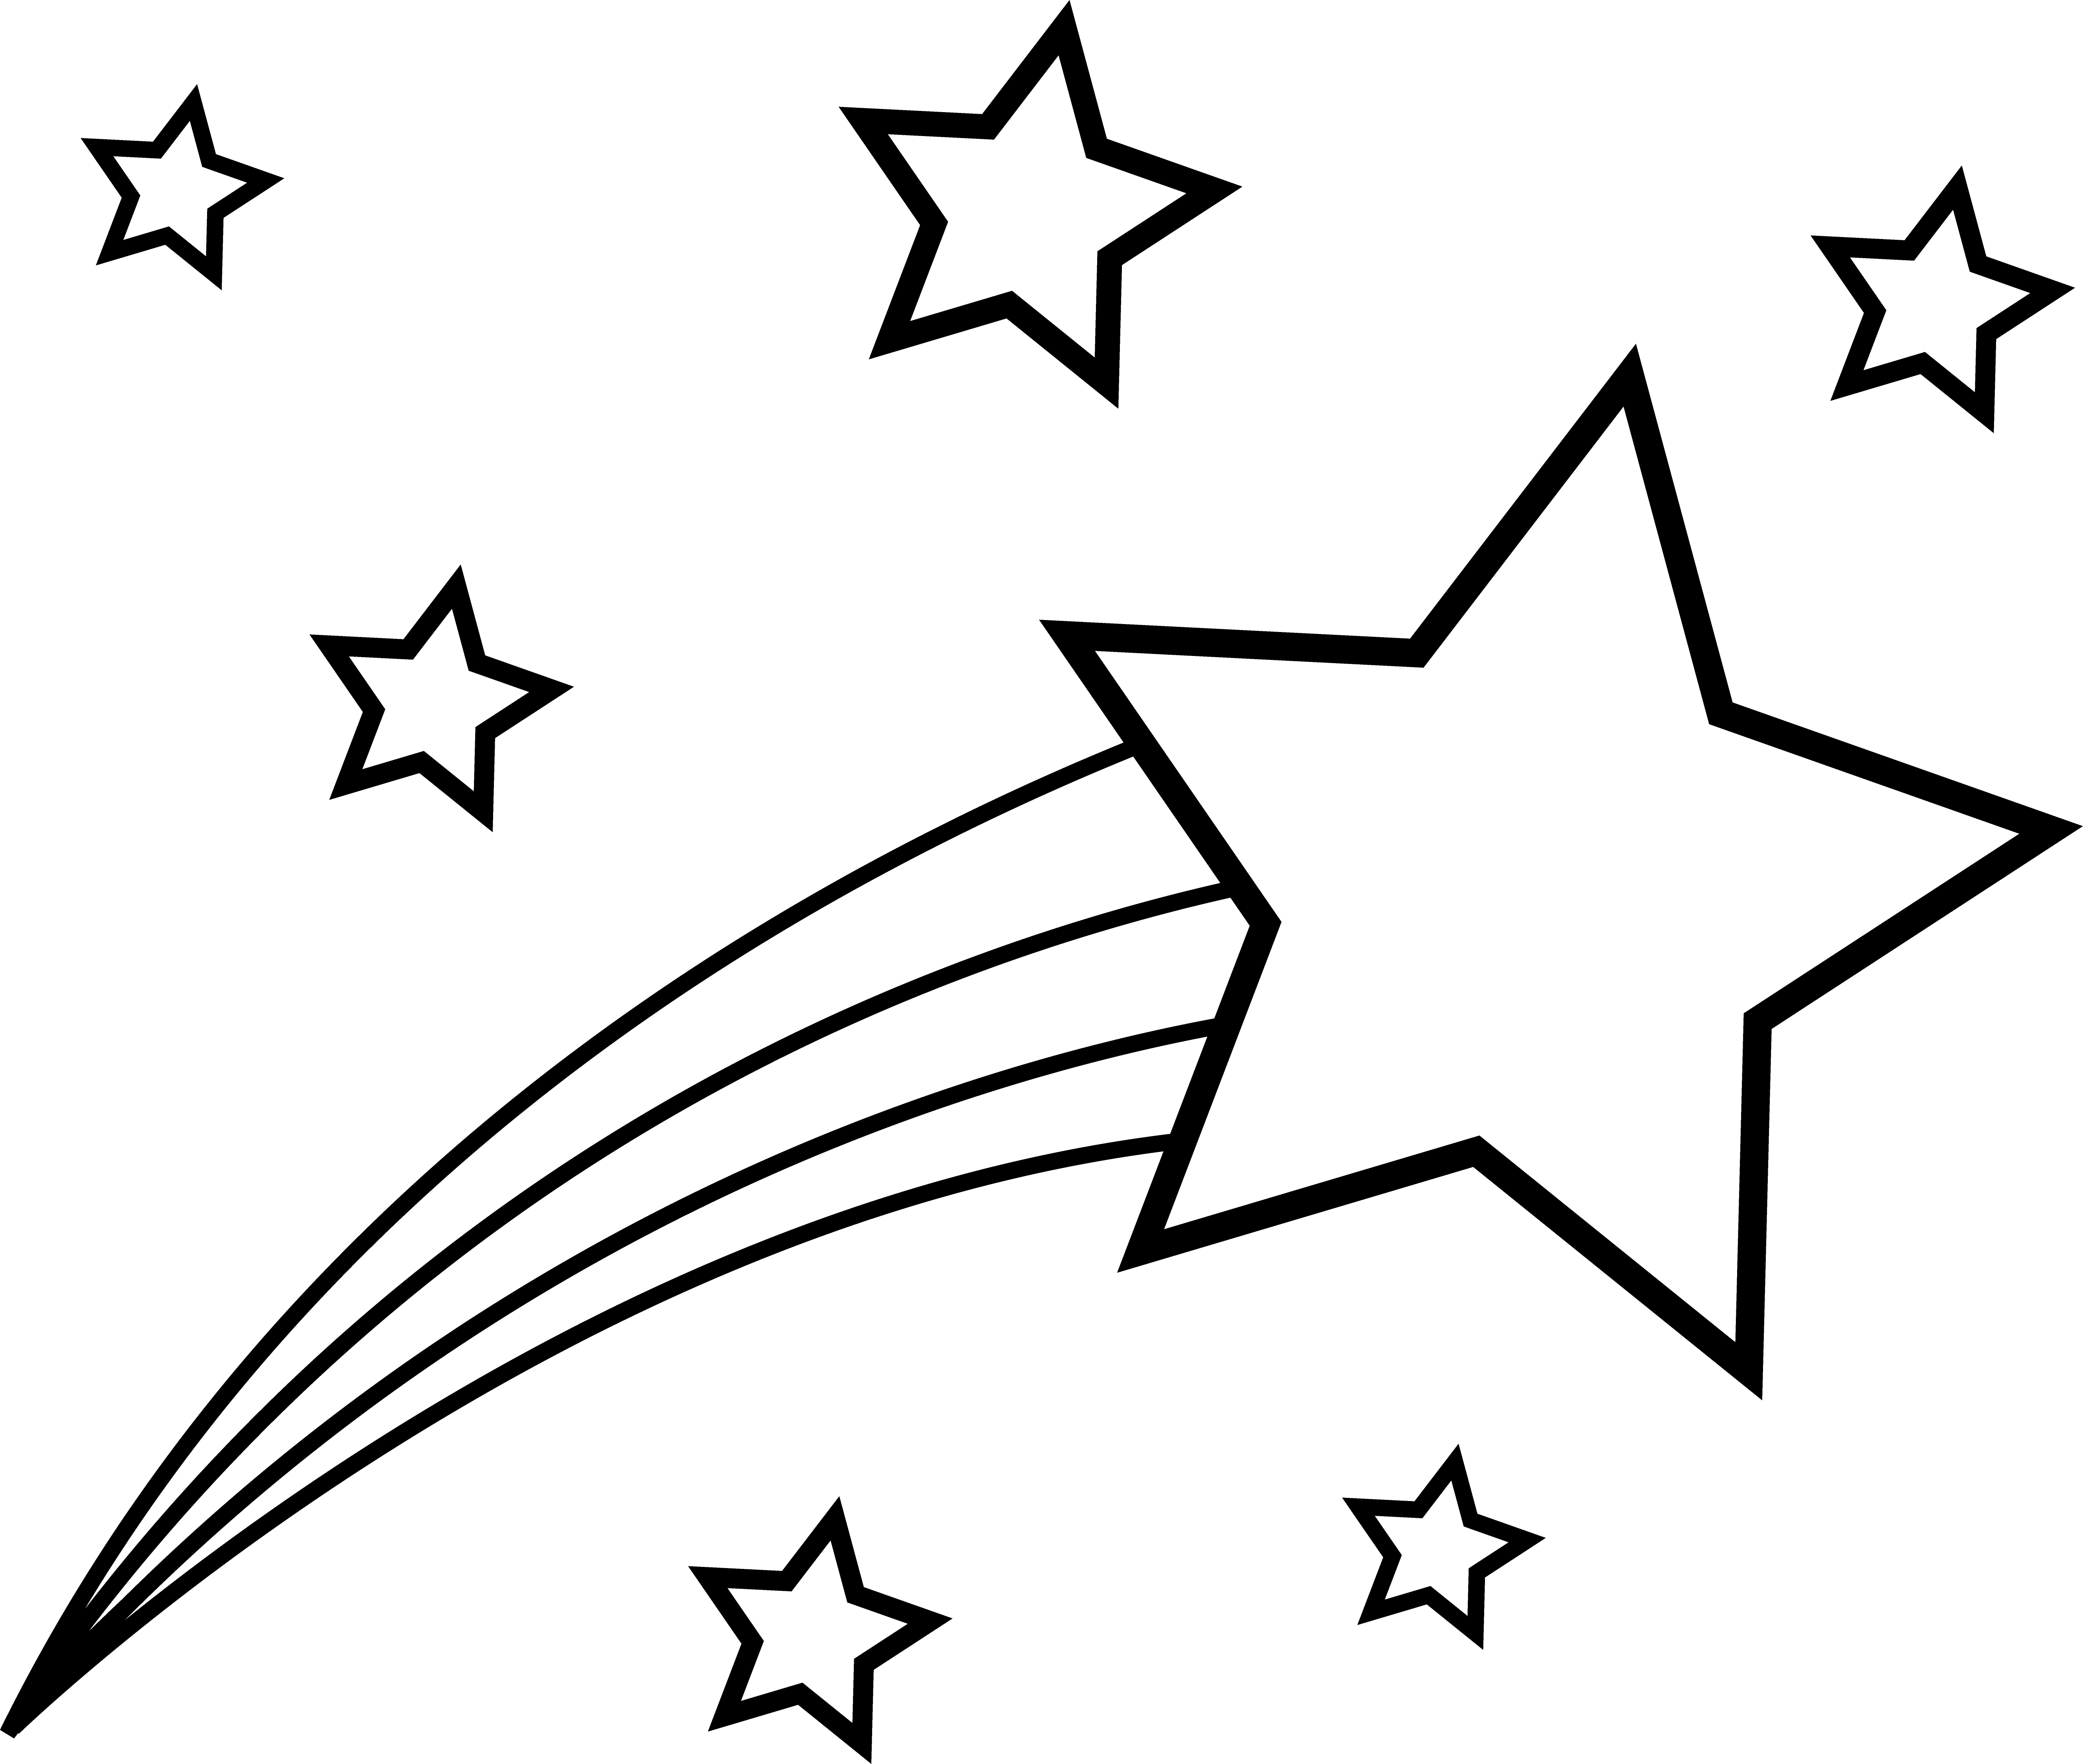 Stars drawing clipart best Drawing images free download